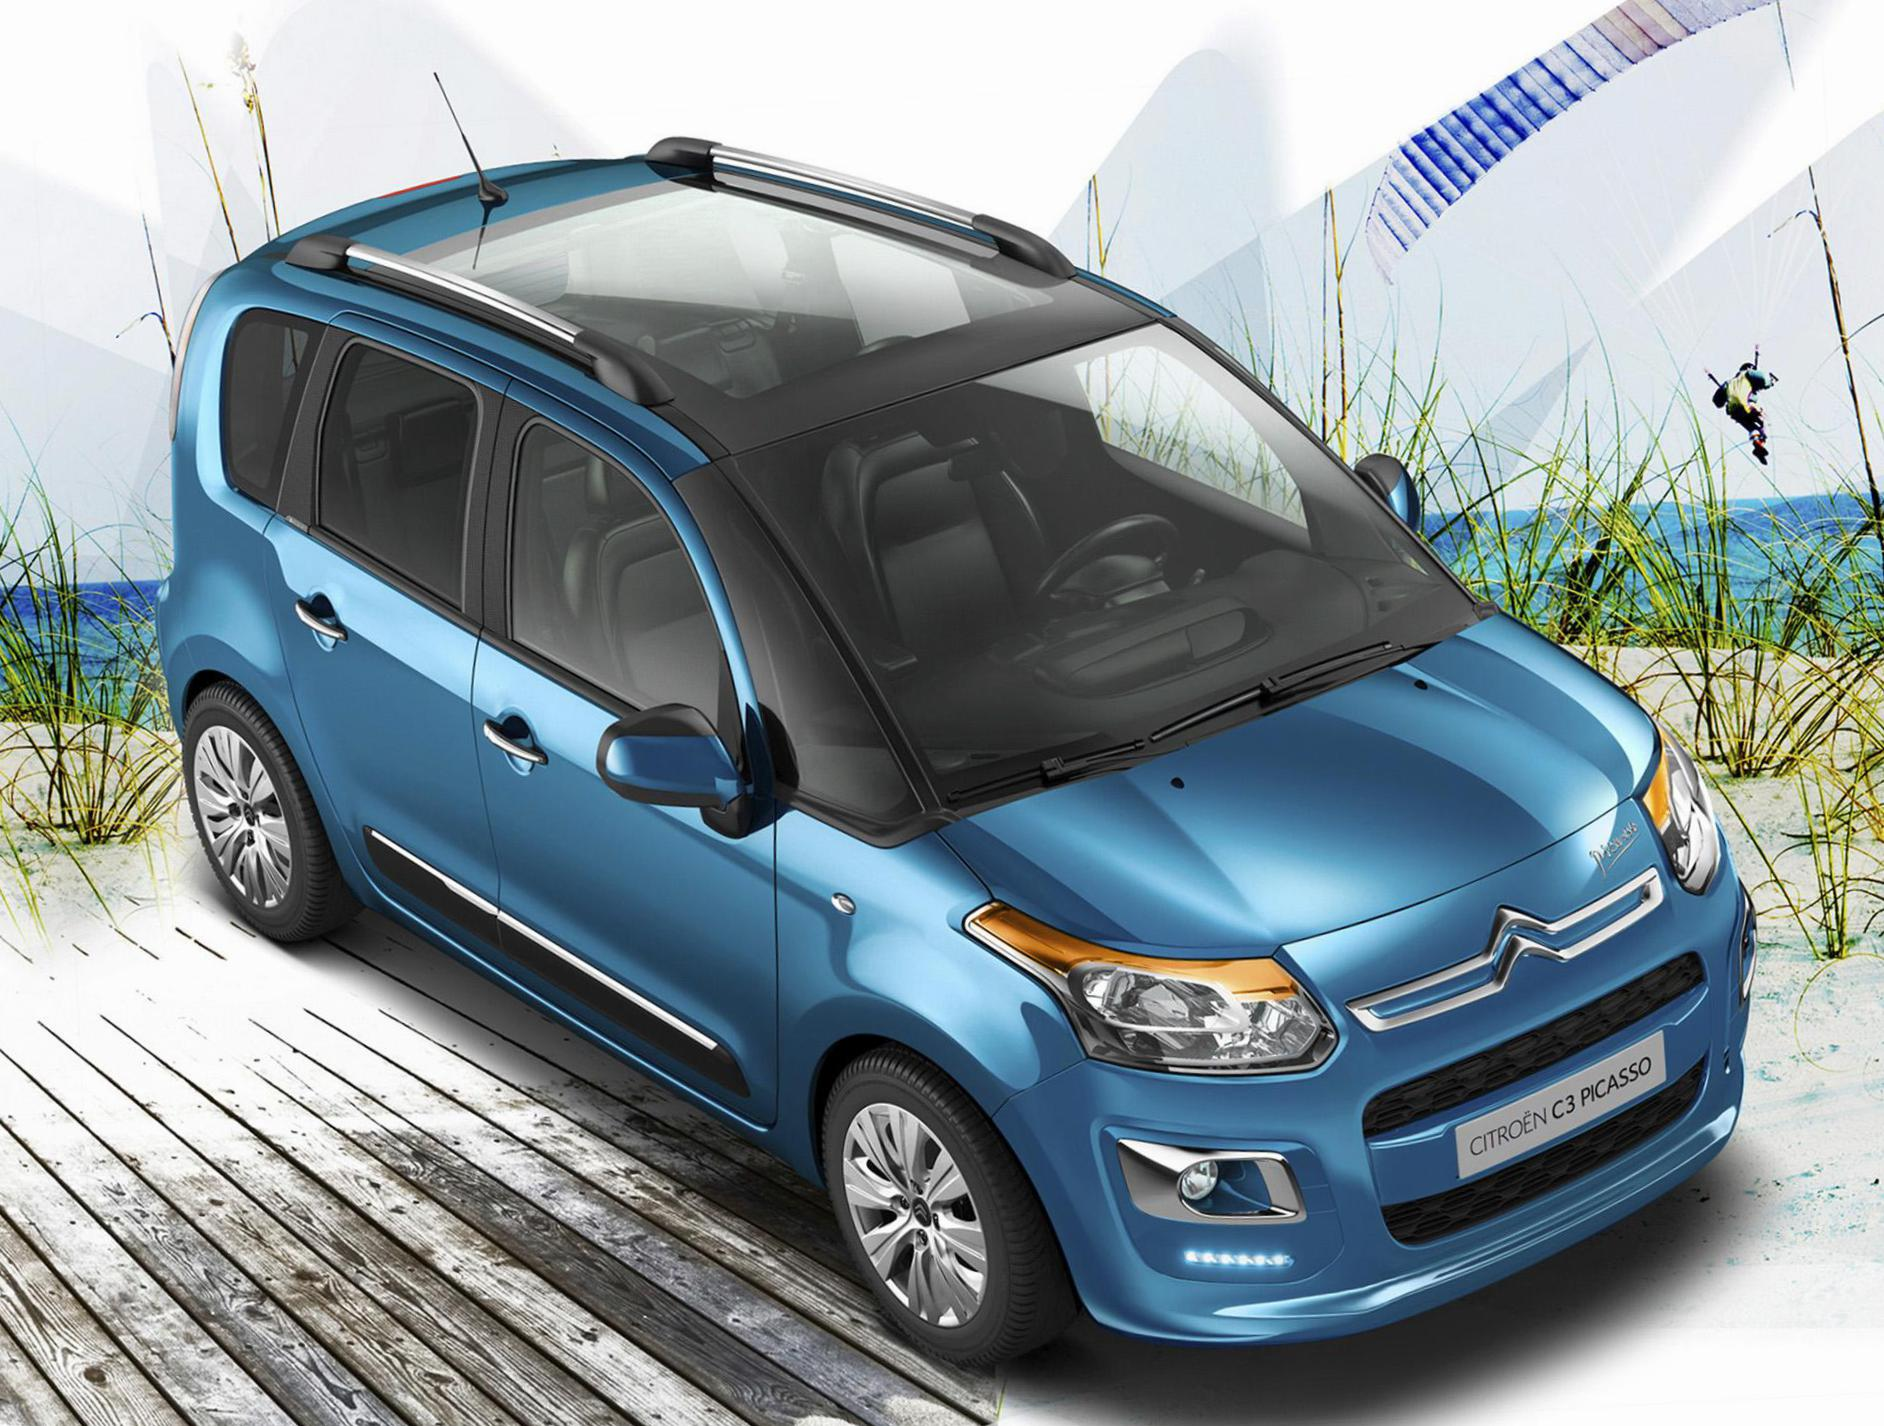 citroen c3 picasso photos and specs photo c3 picasso citroen tuning and 24 perfect photos of. Black Bedroom Furniture Sets. Home Design Ideas